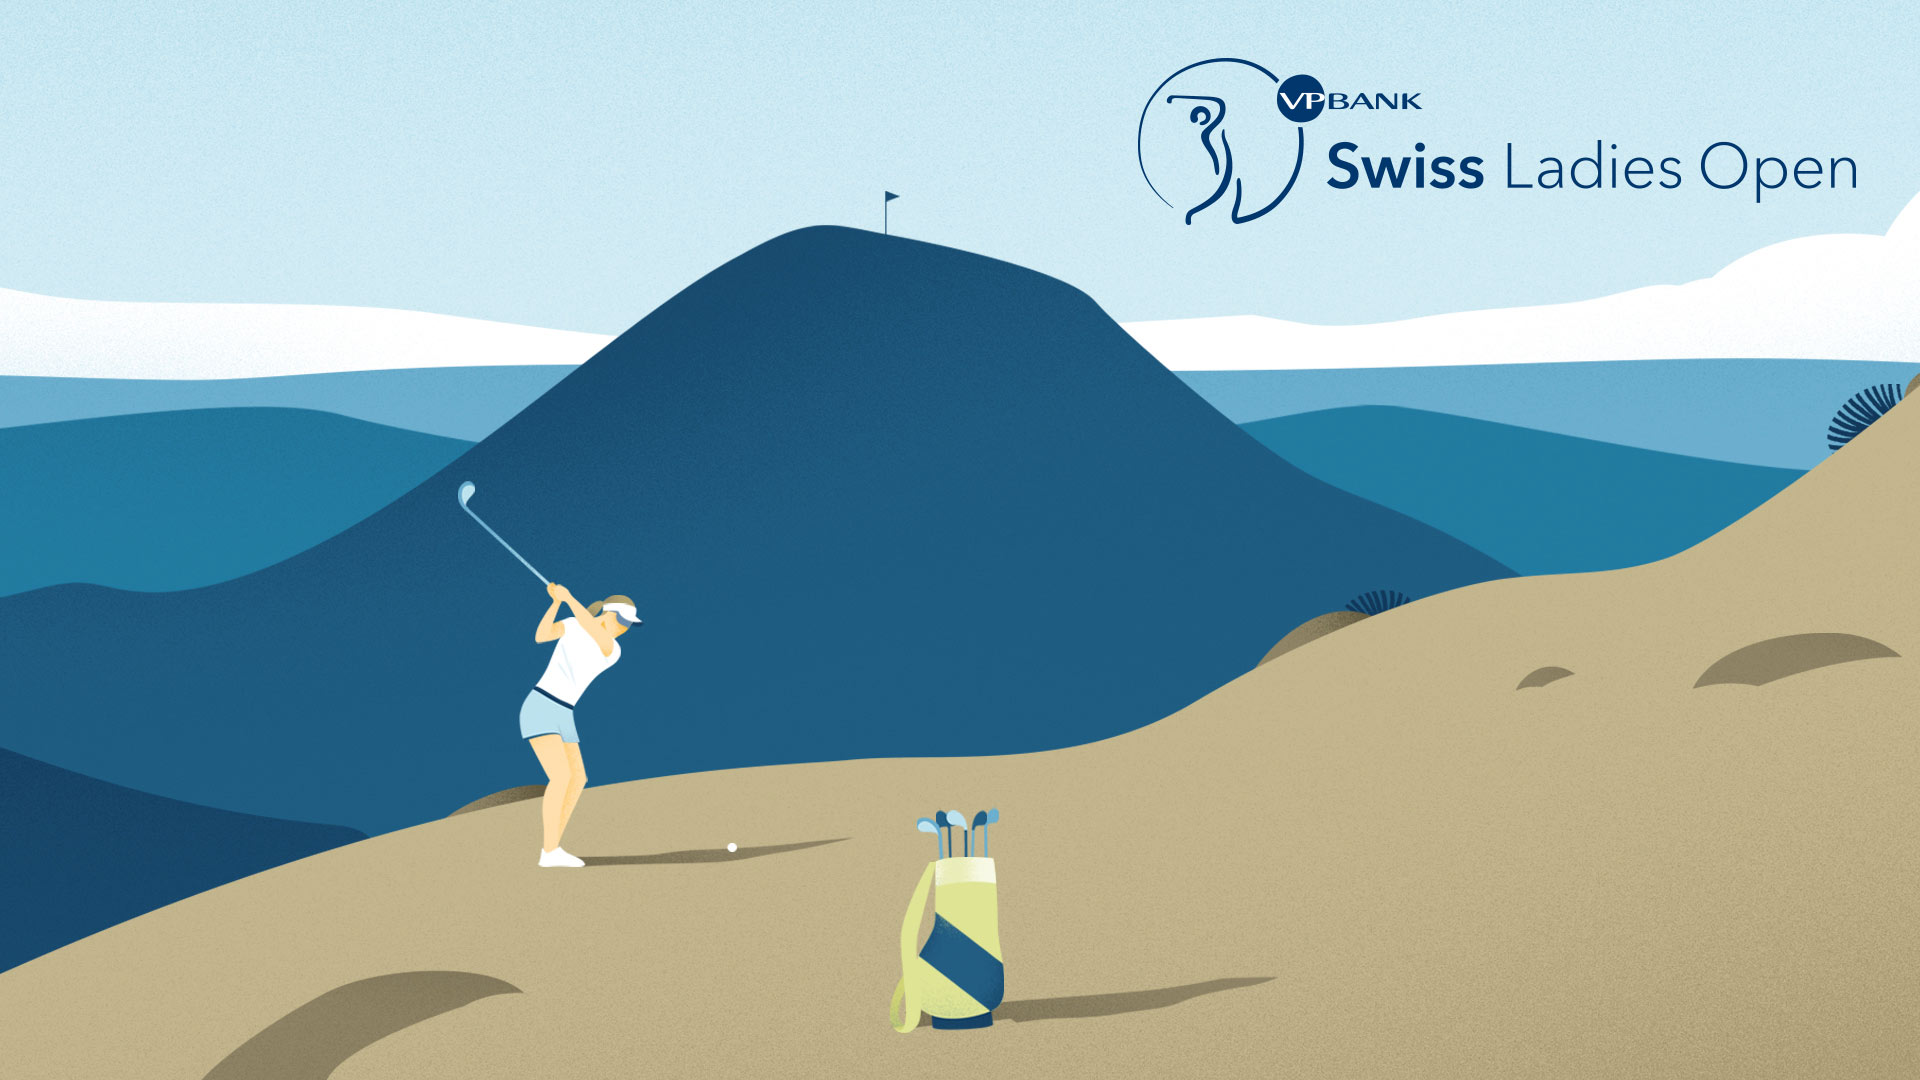 VP Bank Swiss Ladies Open